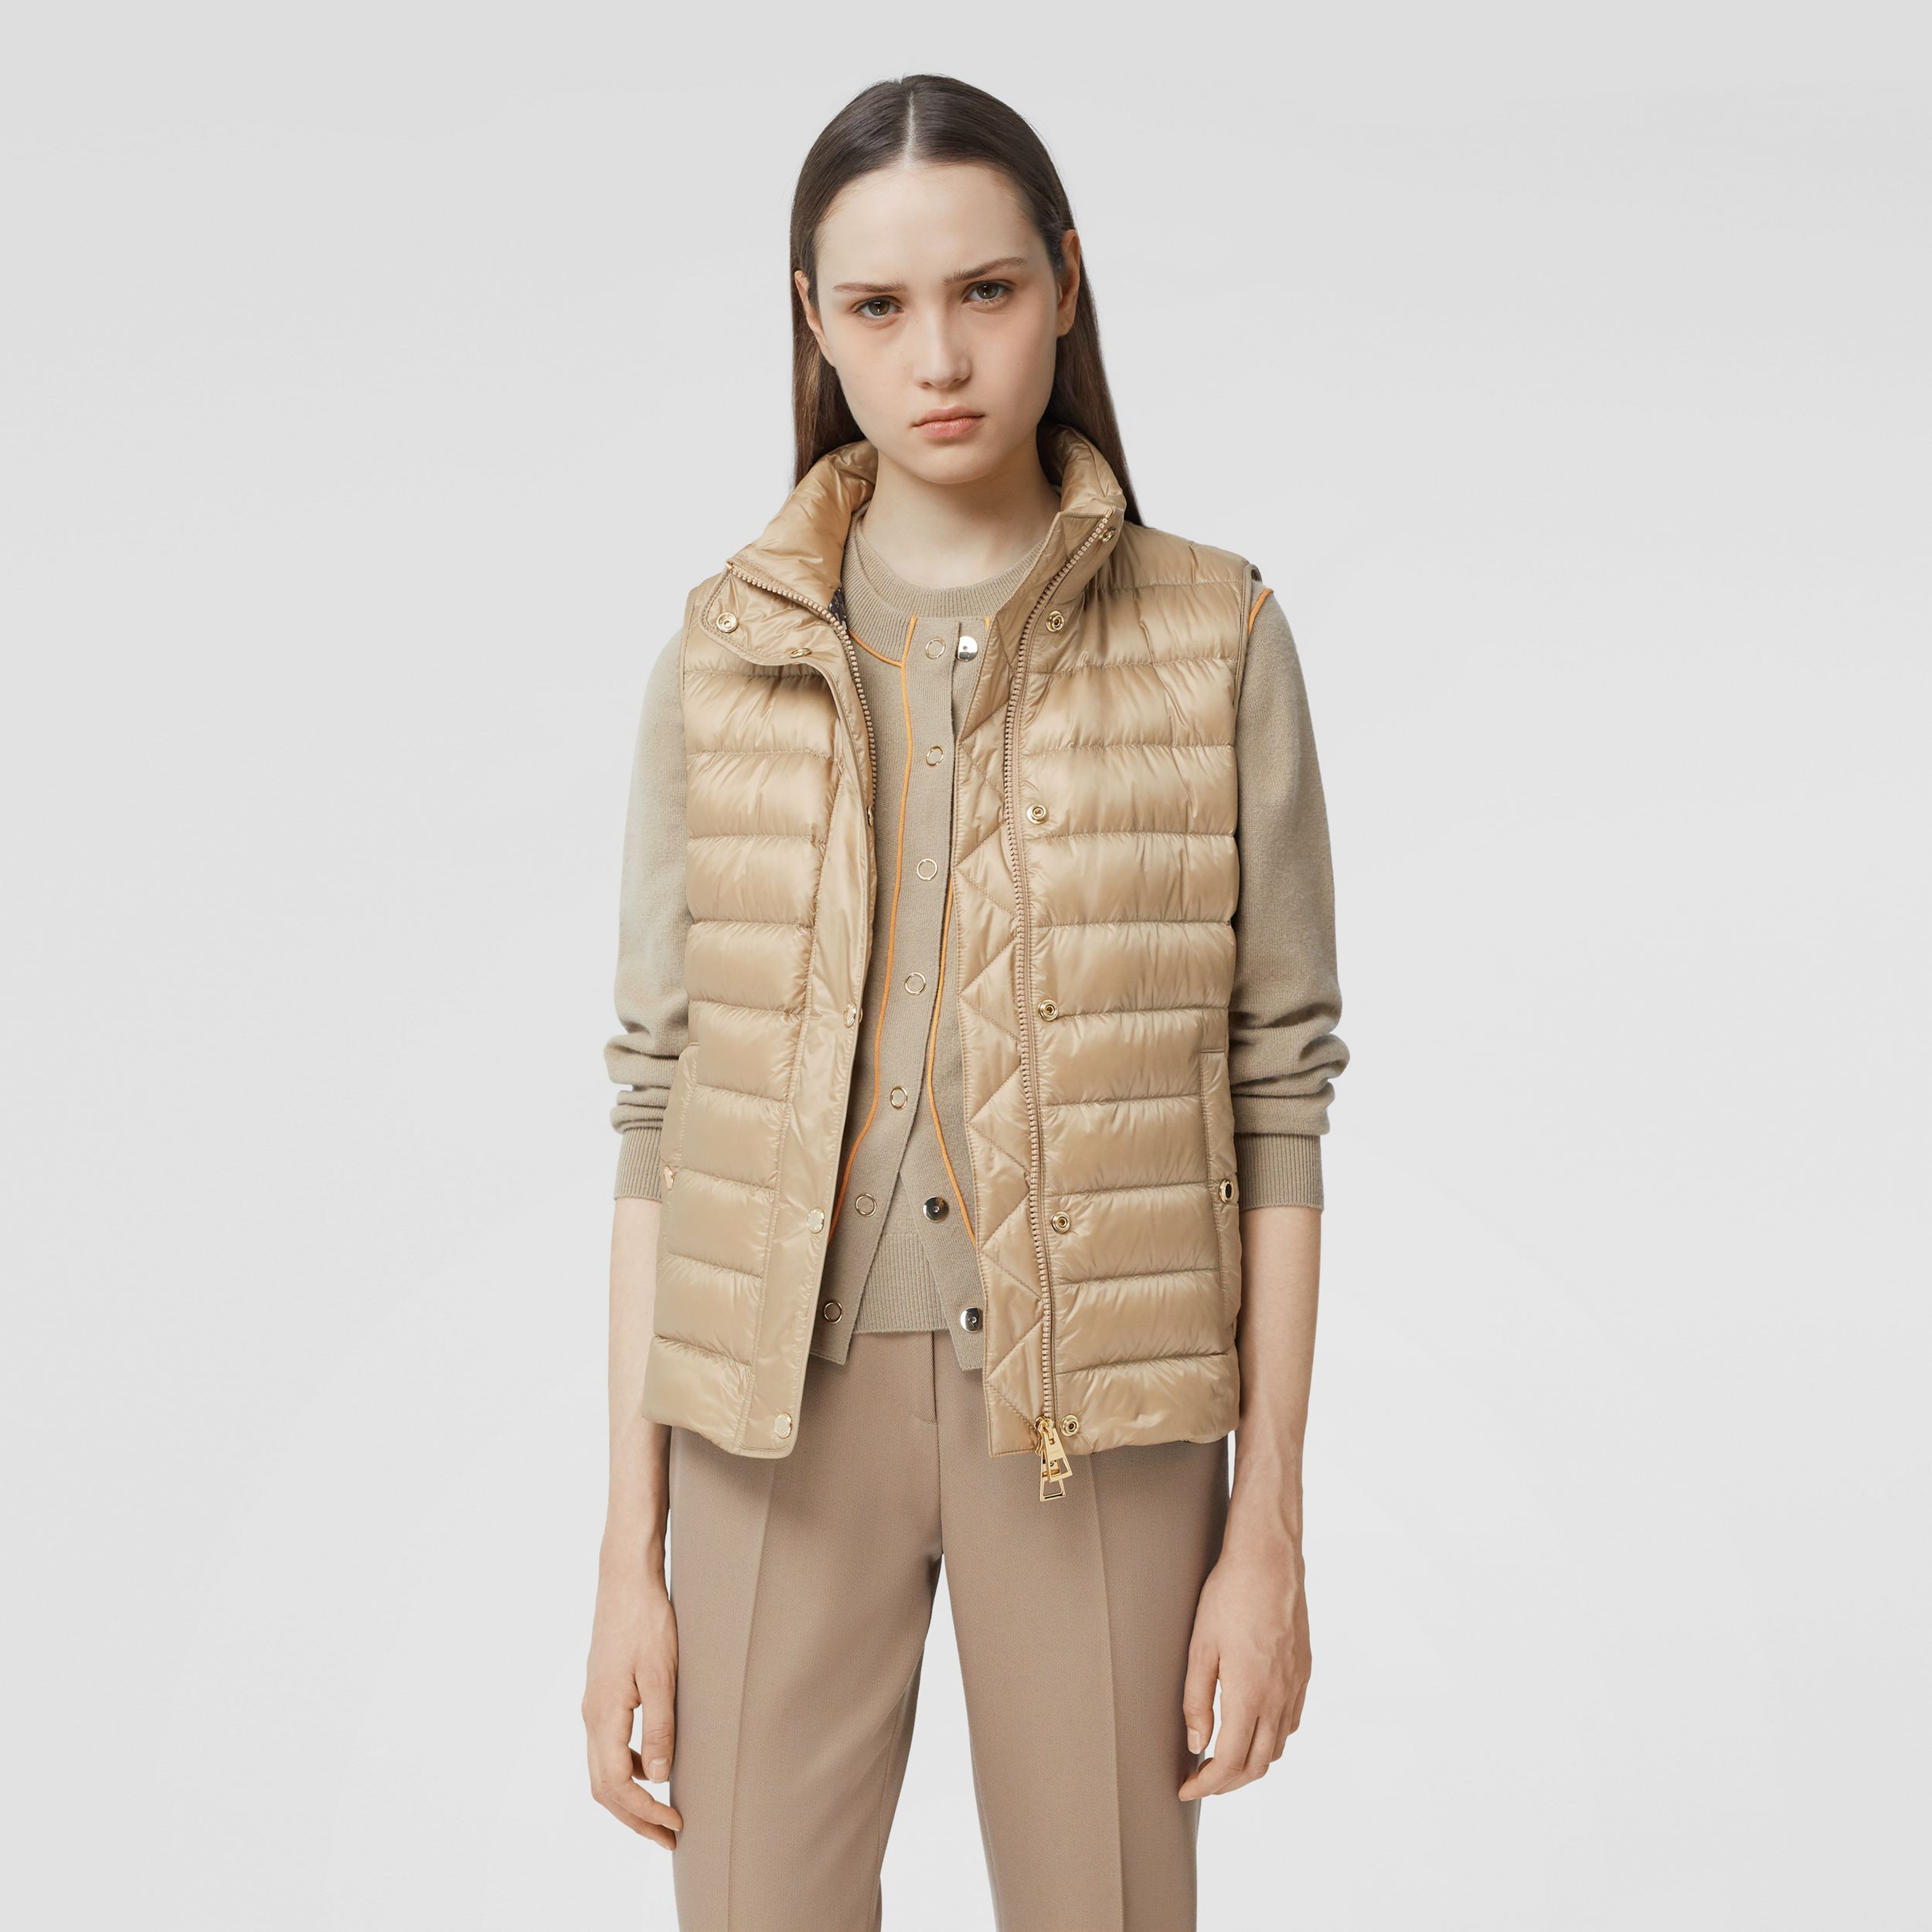 Monogram Print-lined Lightweight Puffer Gilet in Honey - Women | Burberry - 1